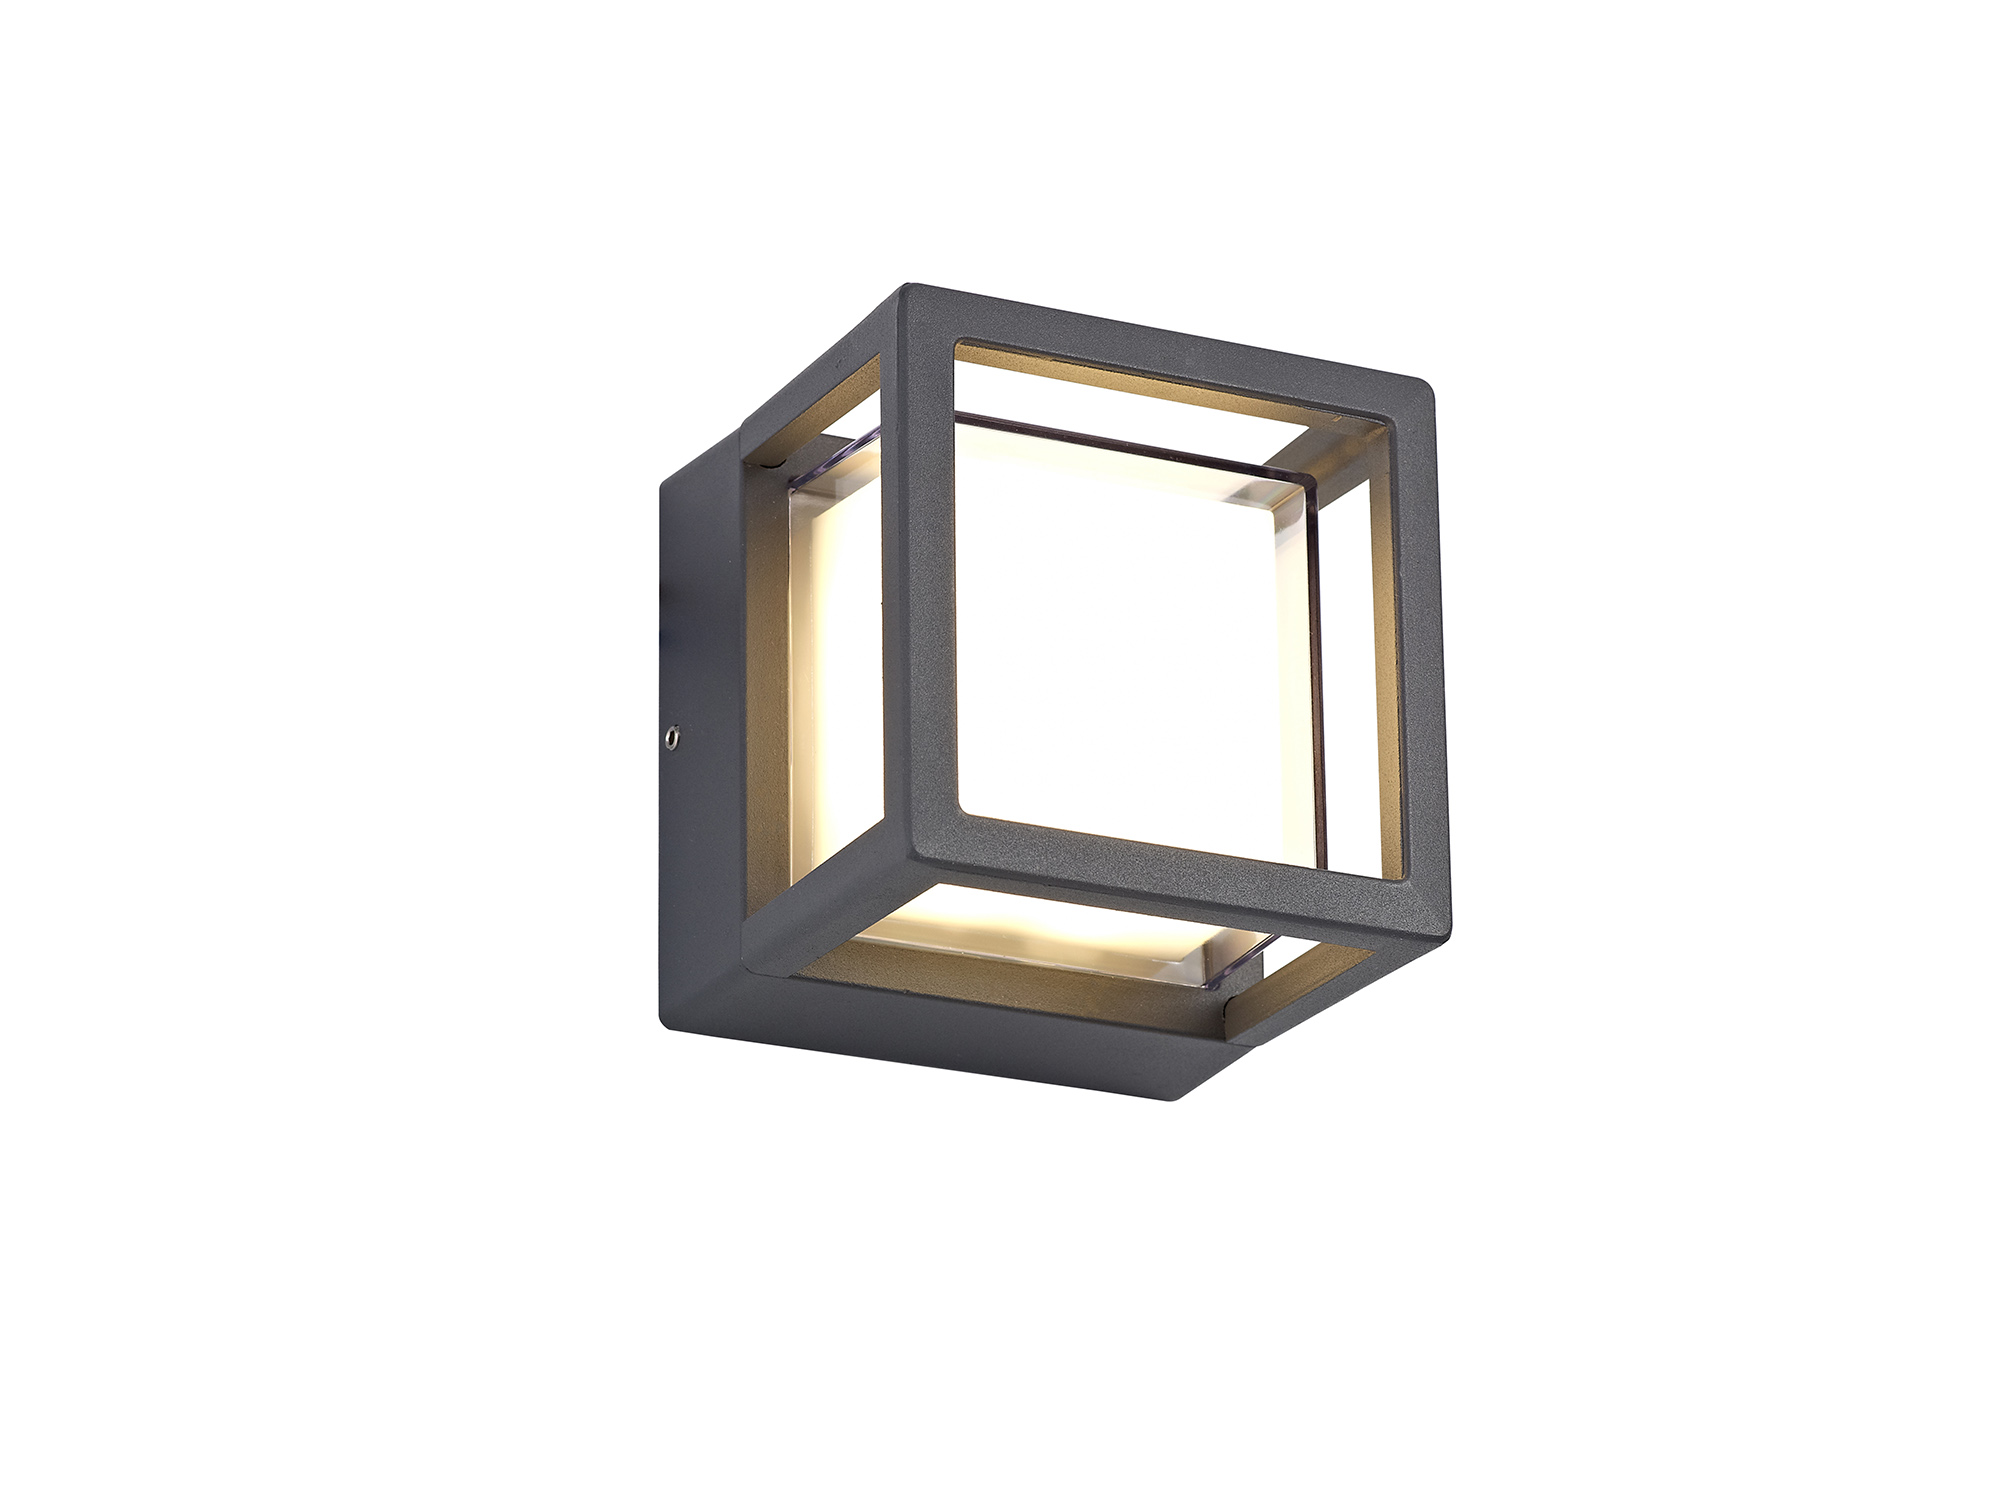 Square Downlight, 1 x 6W LED, 3000K, 360lm, IP54, Anthracite, 3yrs Warranty